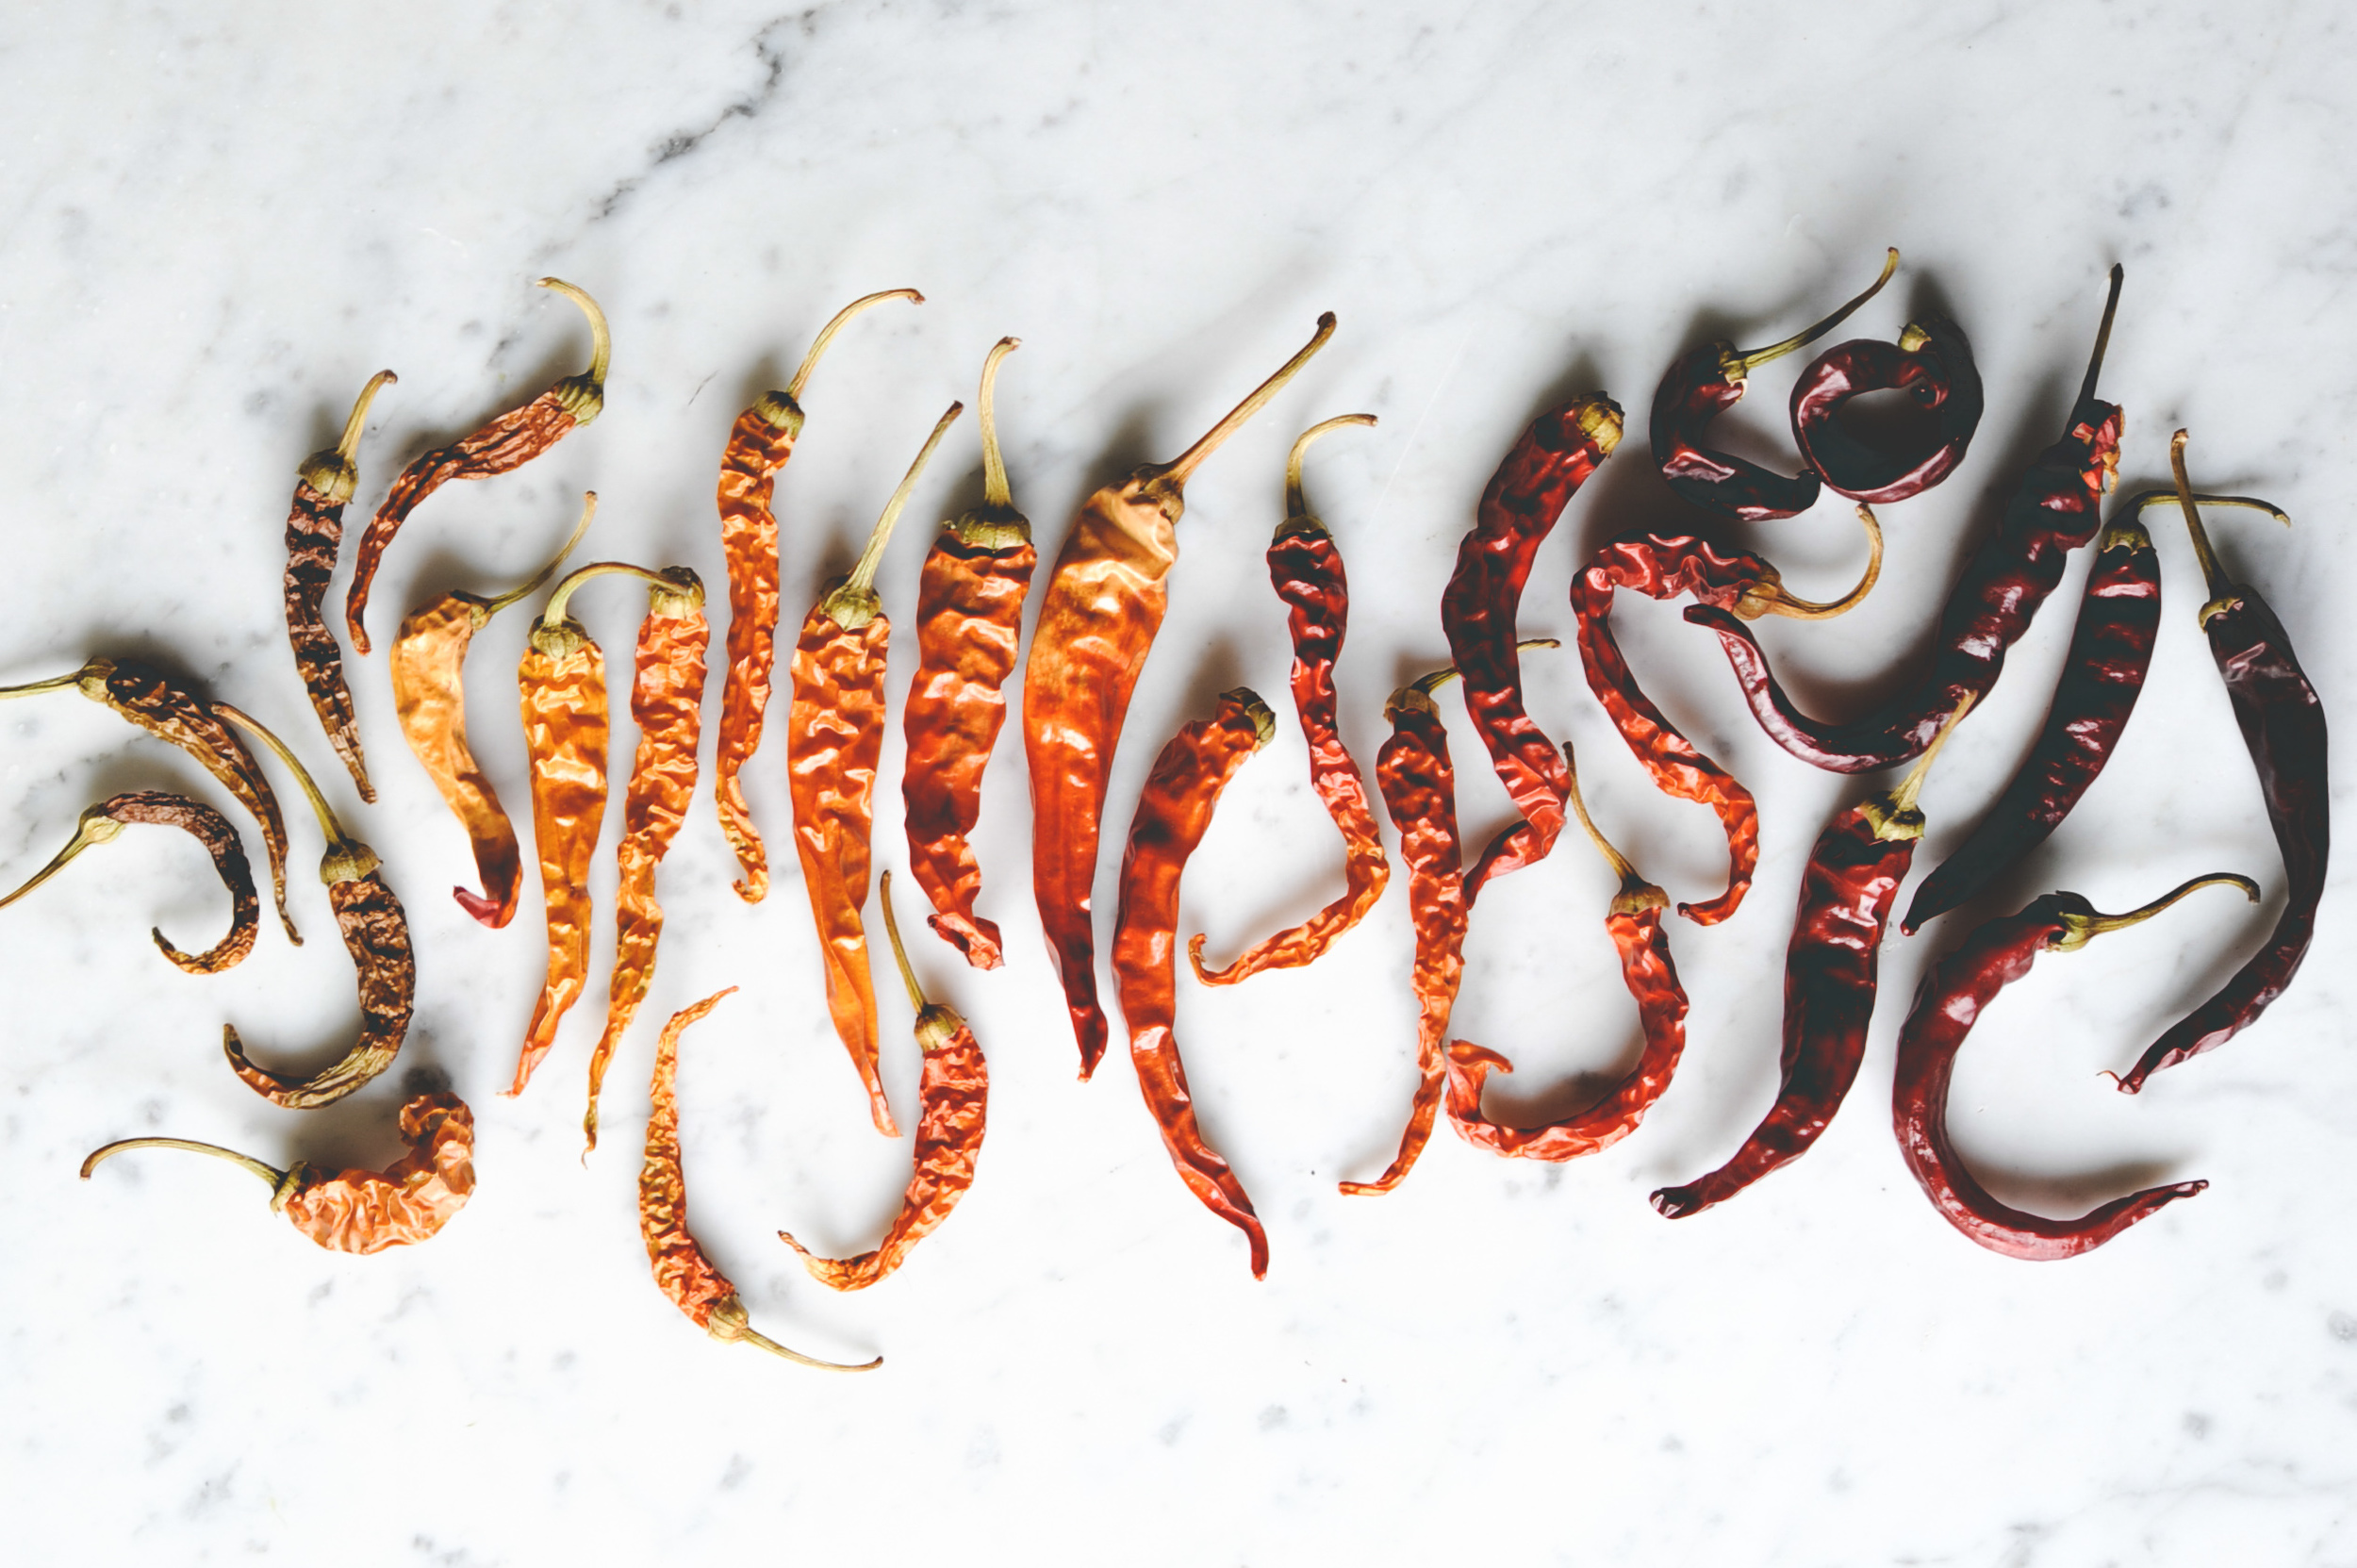 Dried Cayenne peppers - Cayenne's picked green will mature to red while drying.